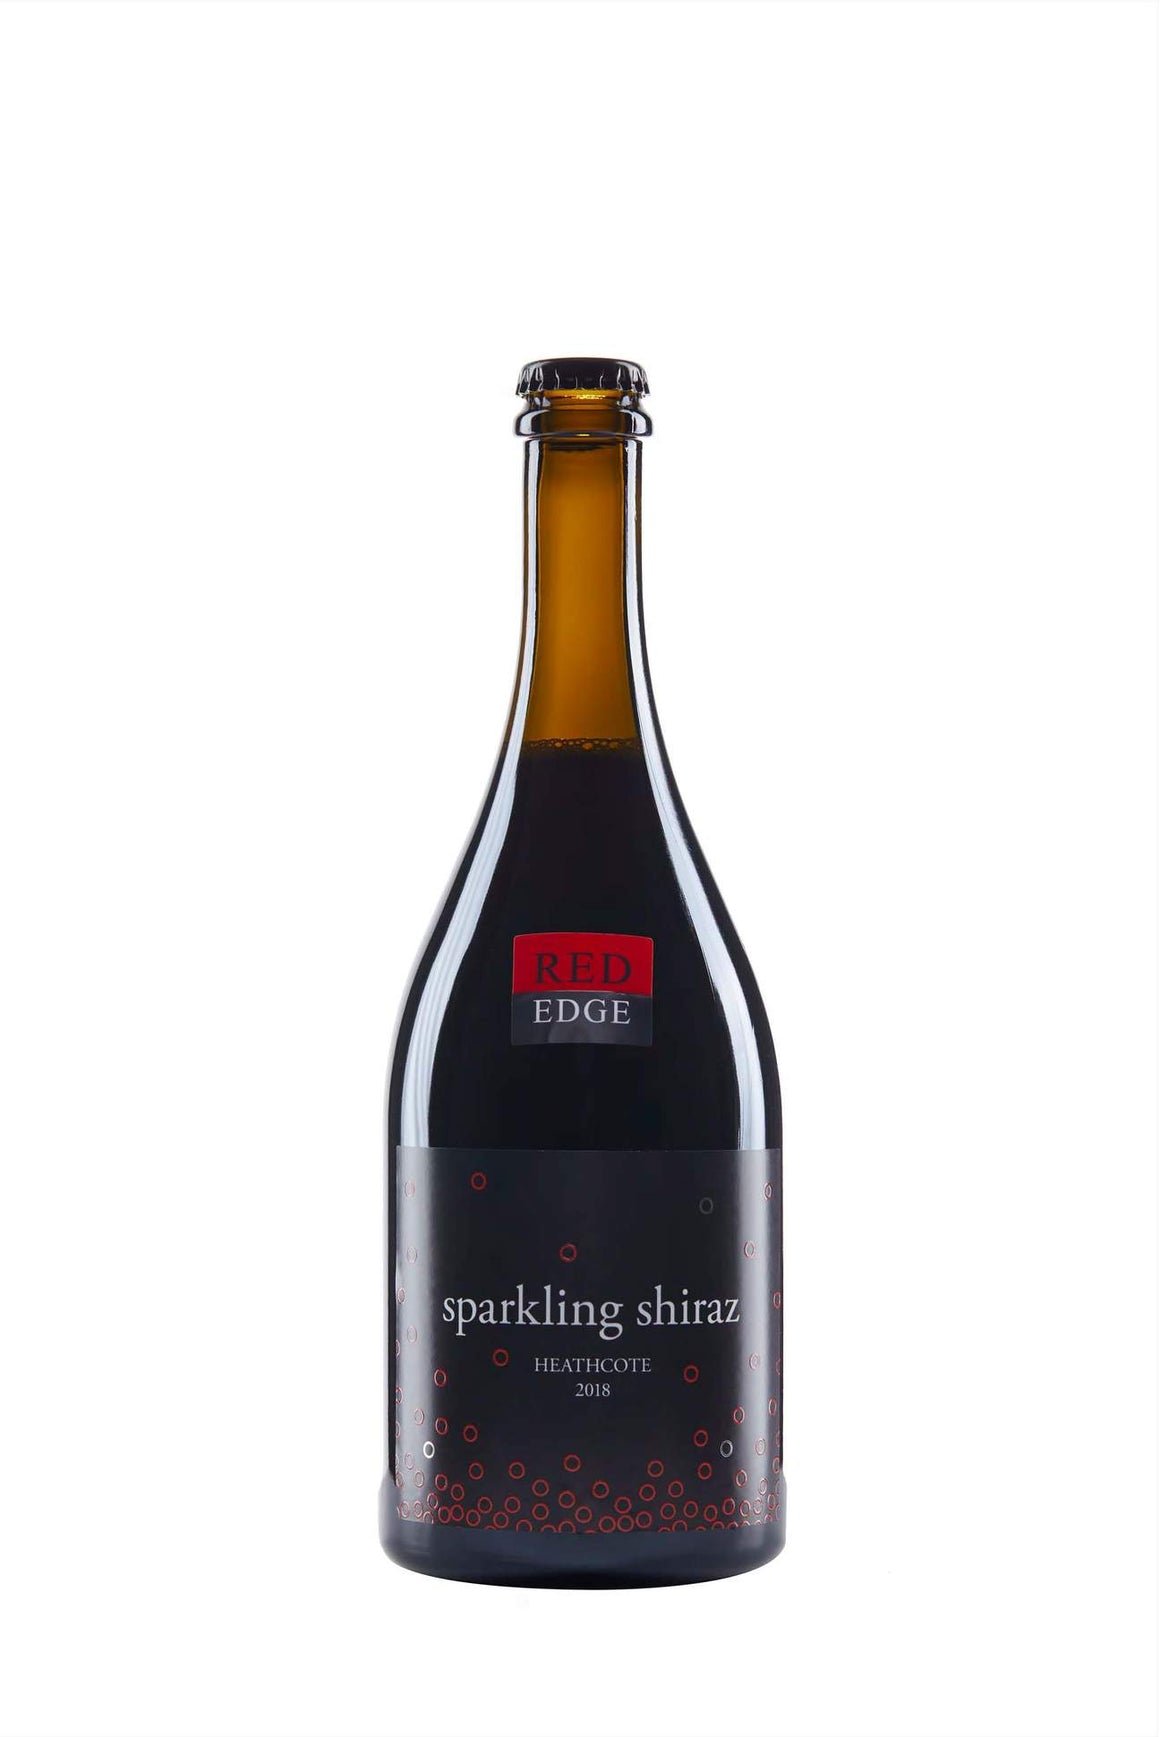 Red Edge Sparkling Shiraz 2018